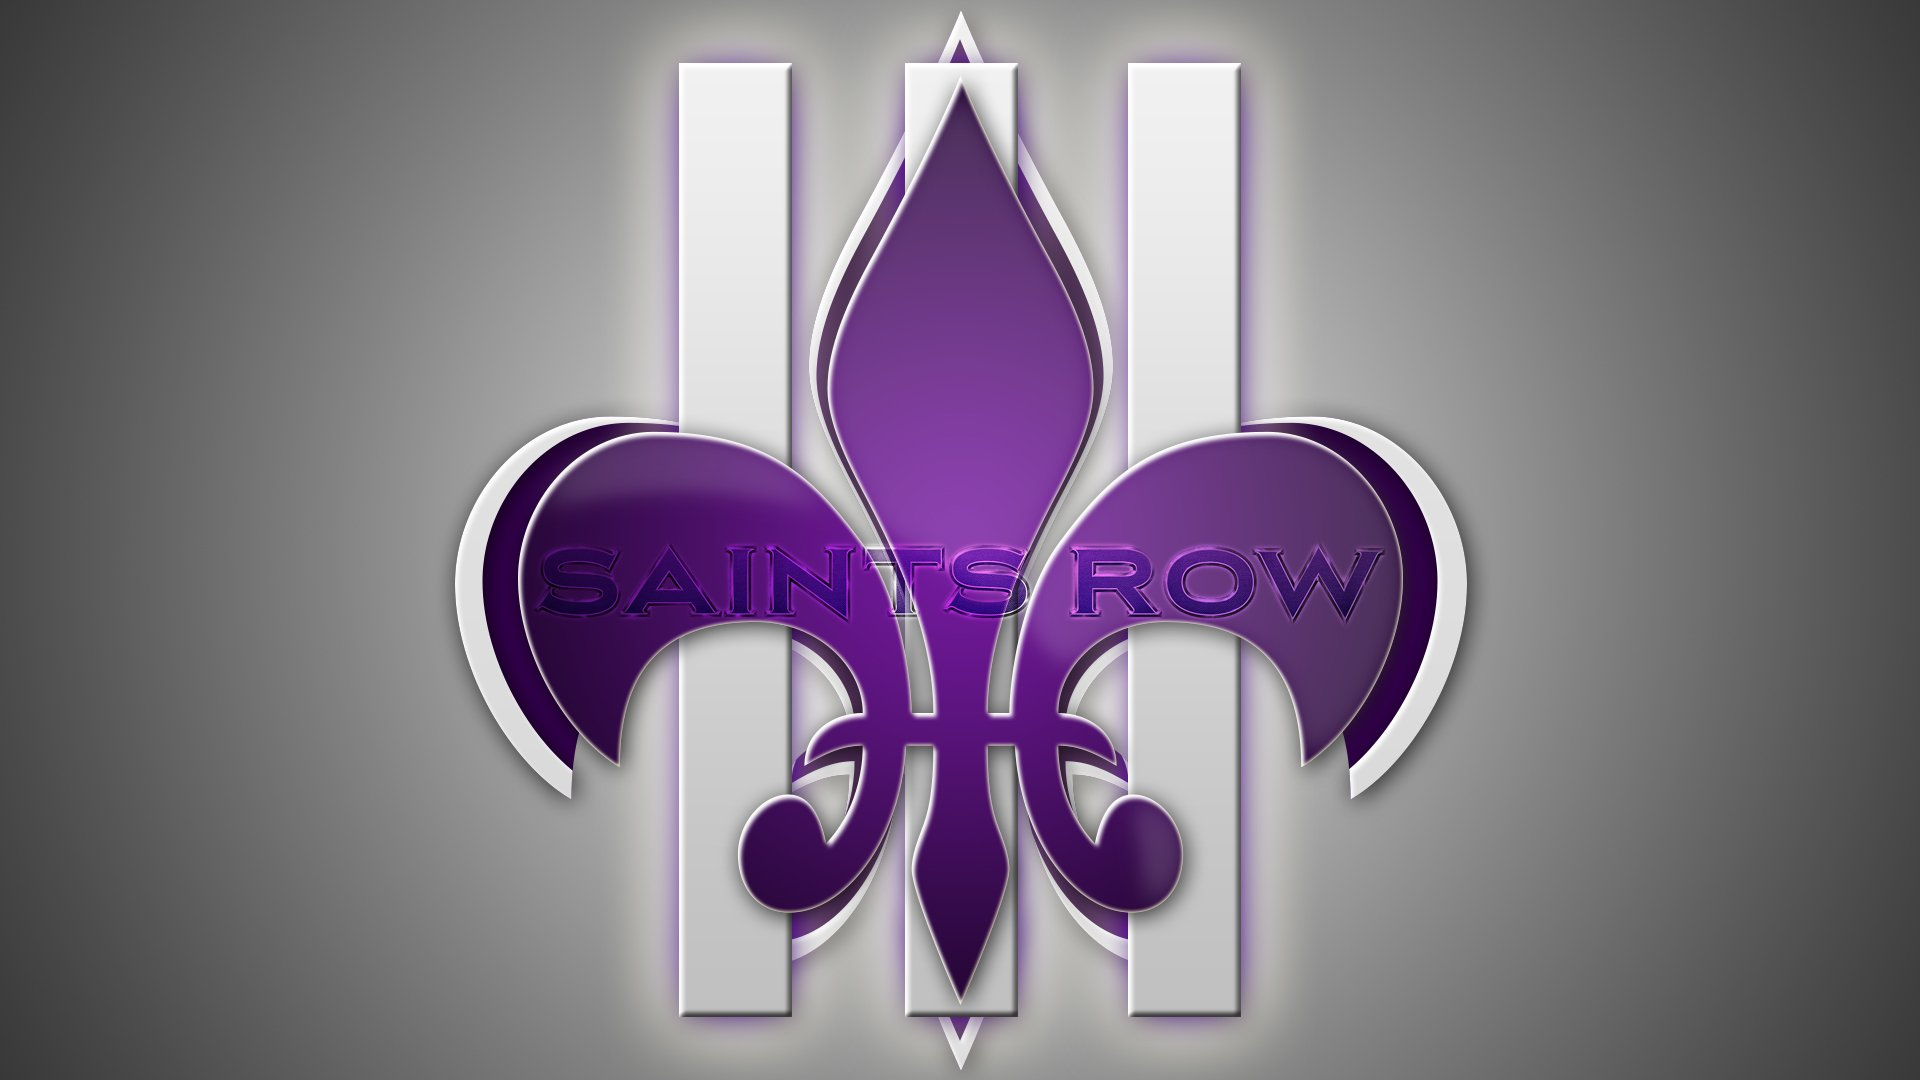 saints logo wallpaper wallpapersafari